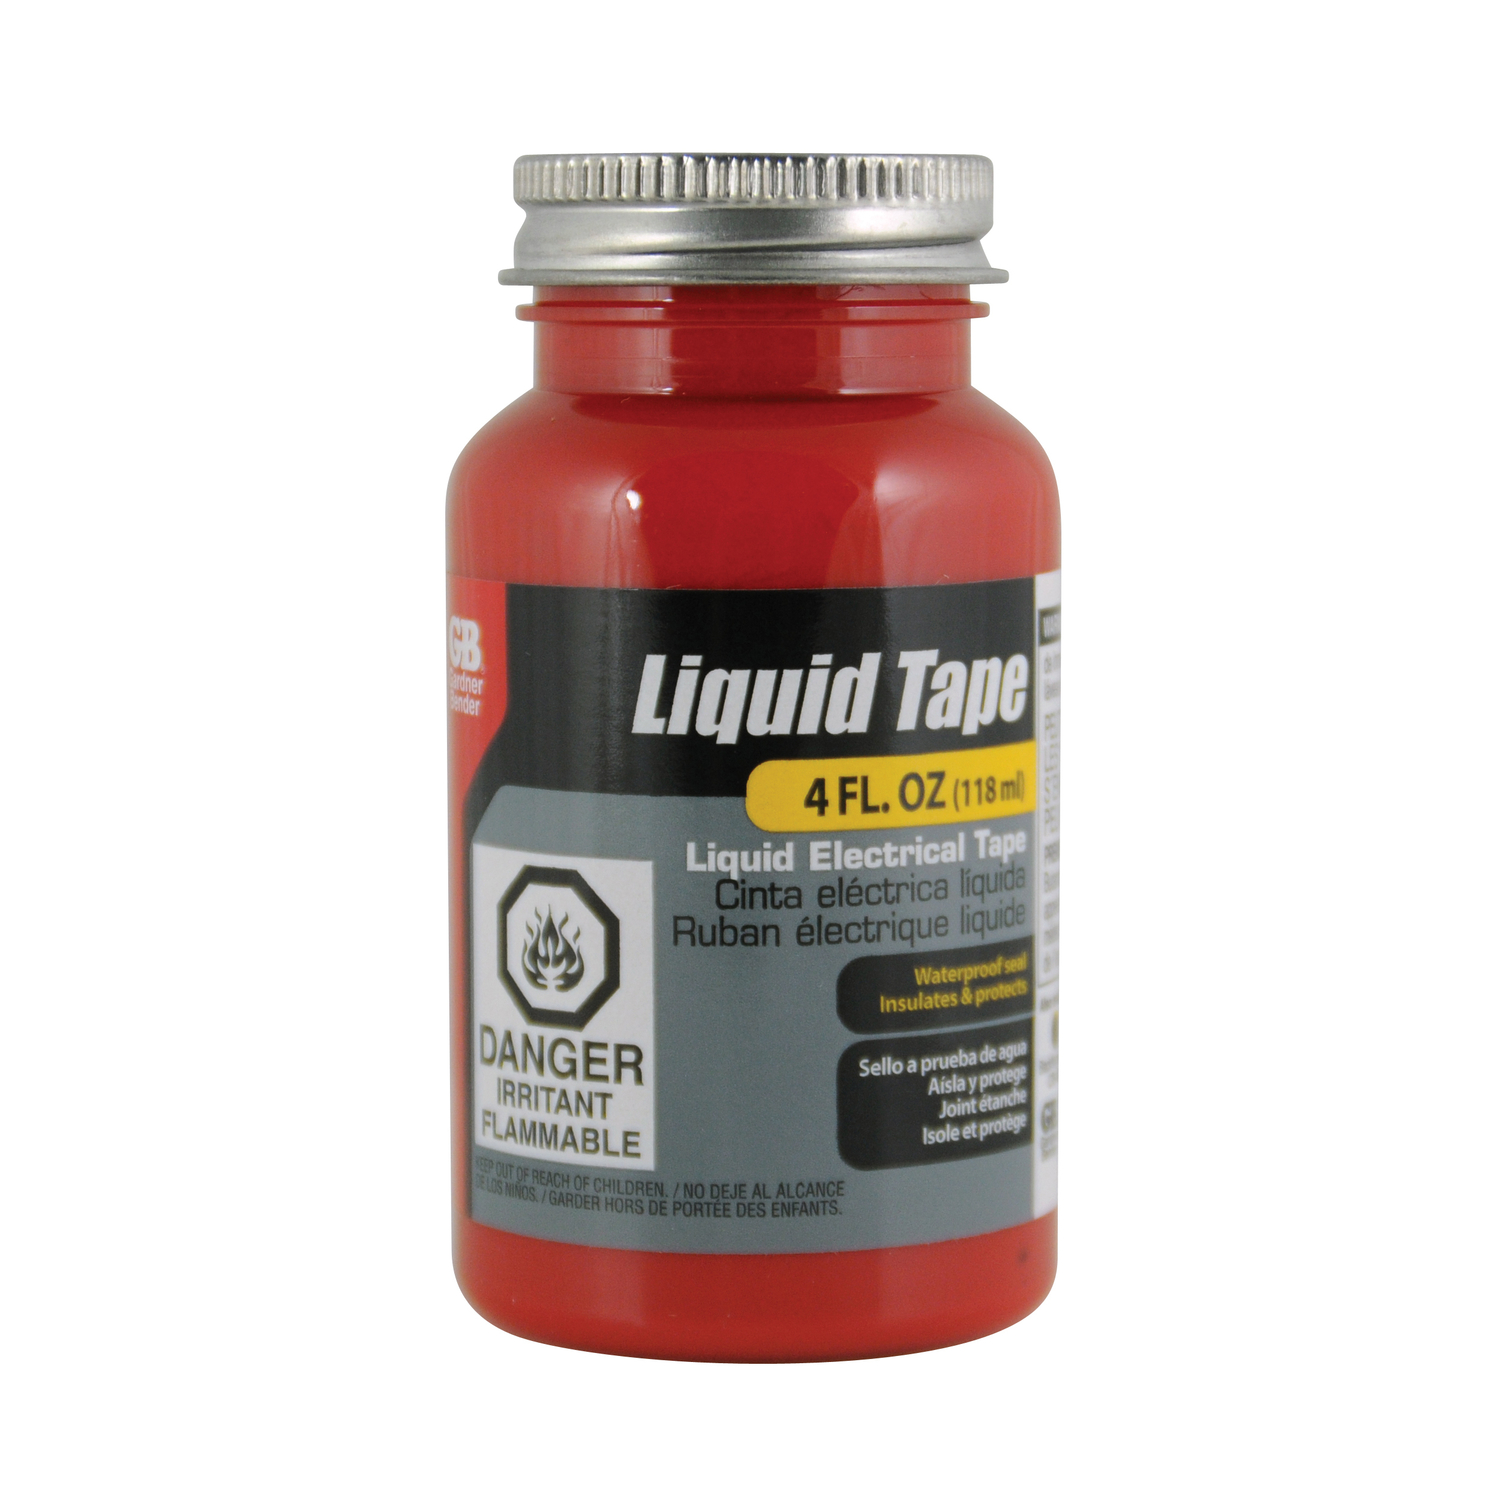 Gardner Bender  Liquid Tape  2 in. W x 2 in. L Red  Rubber  Liquid Electrical Tape